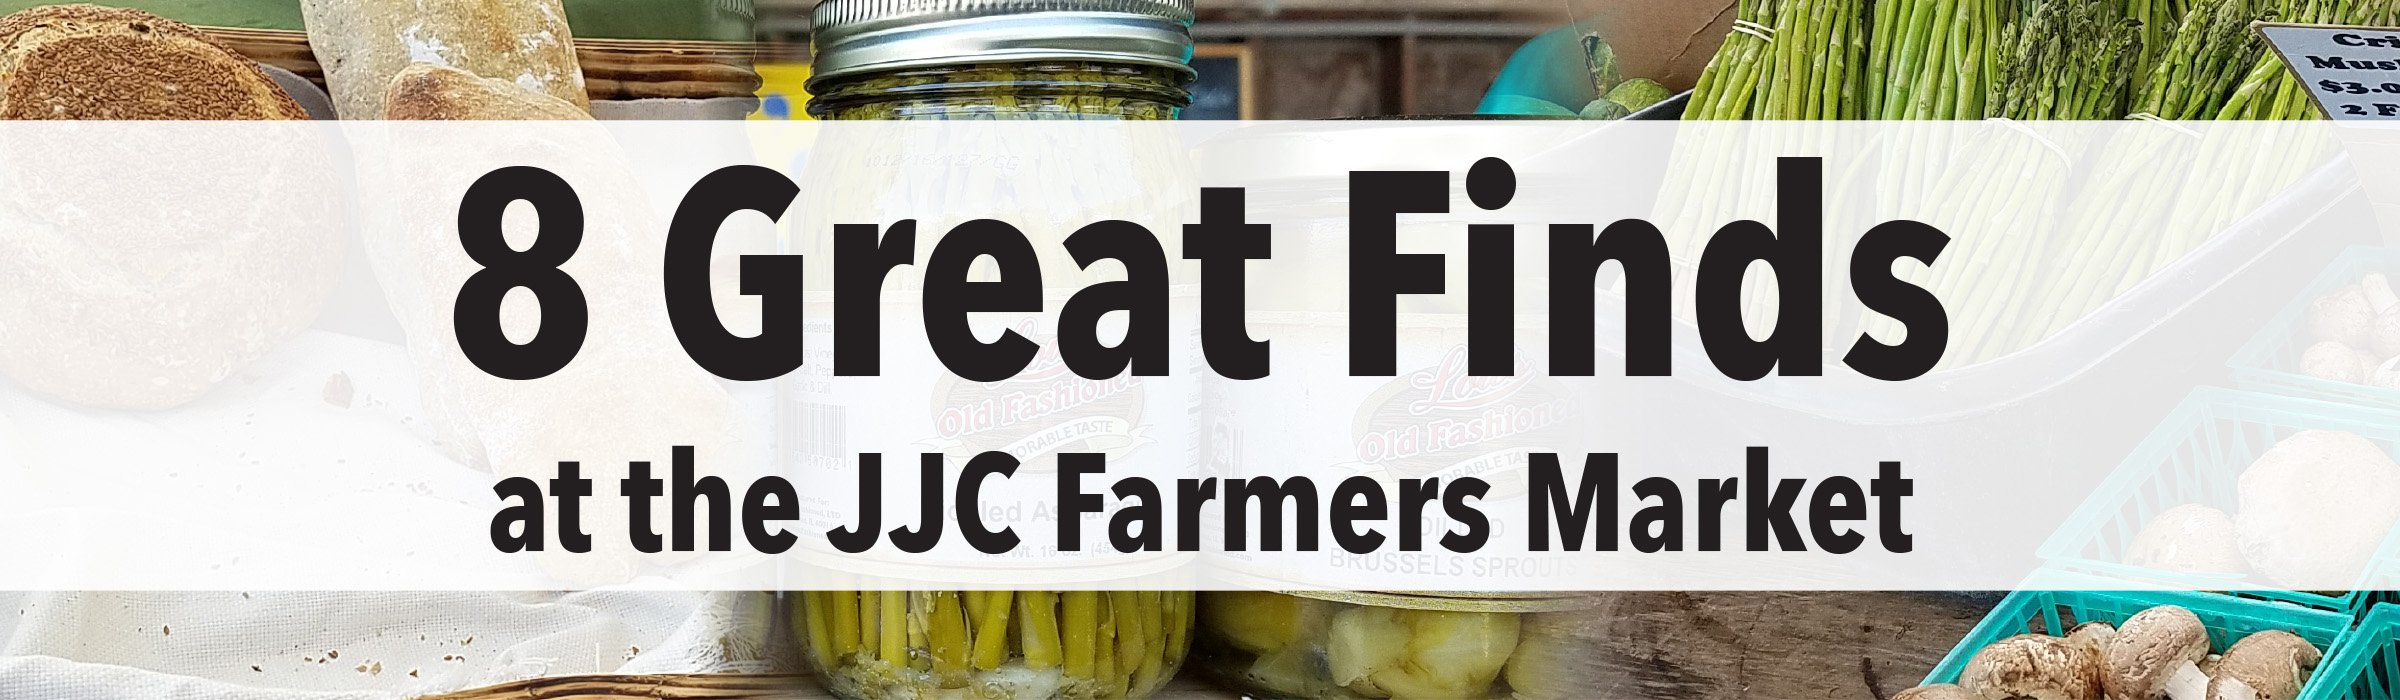 8 great finds at the jjc farmers market joliet junior college